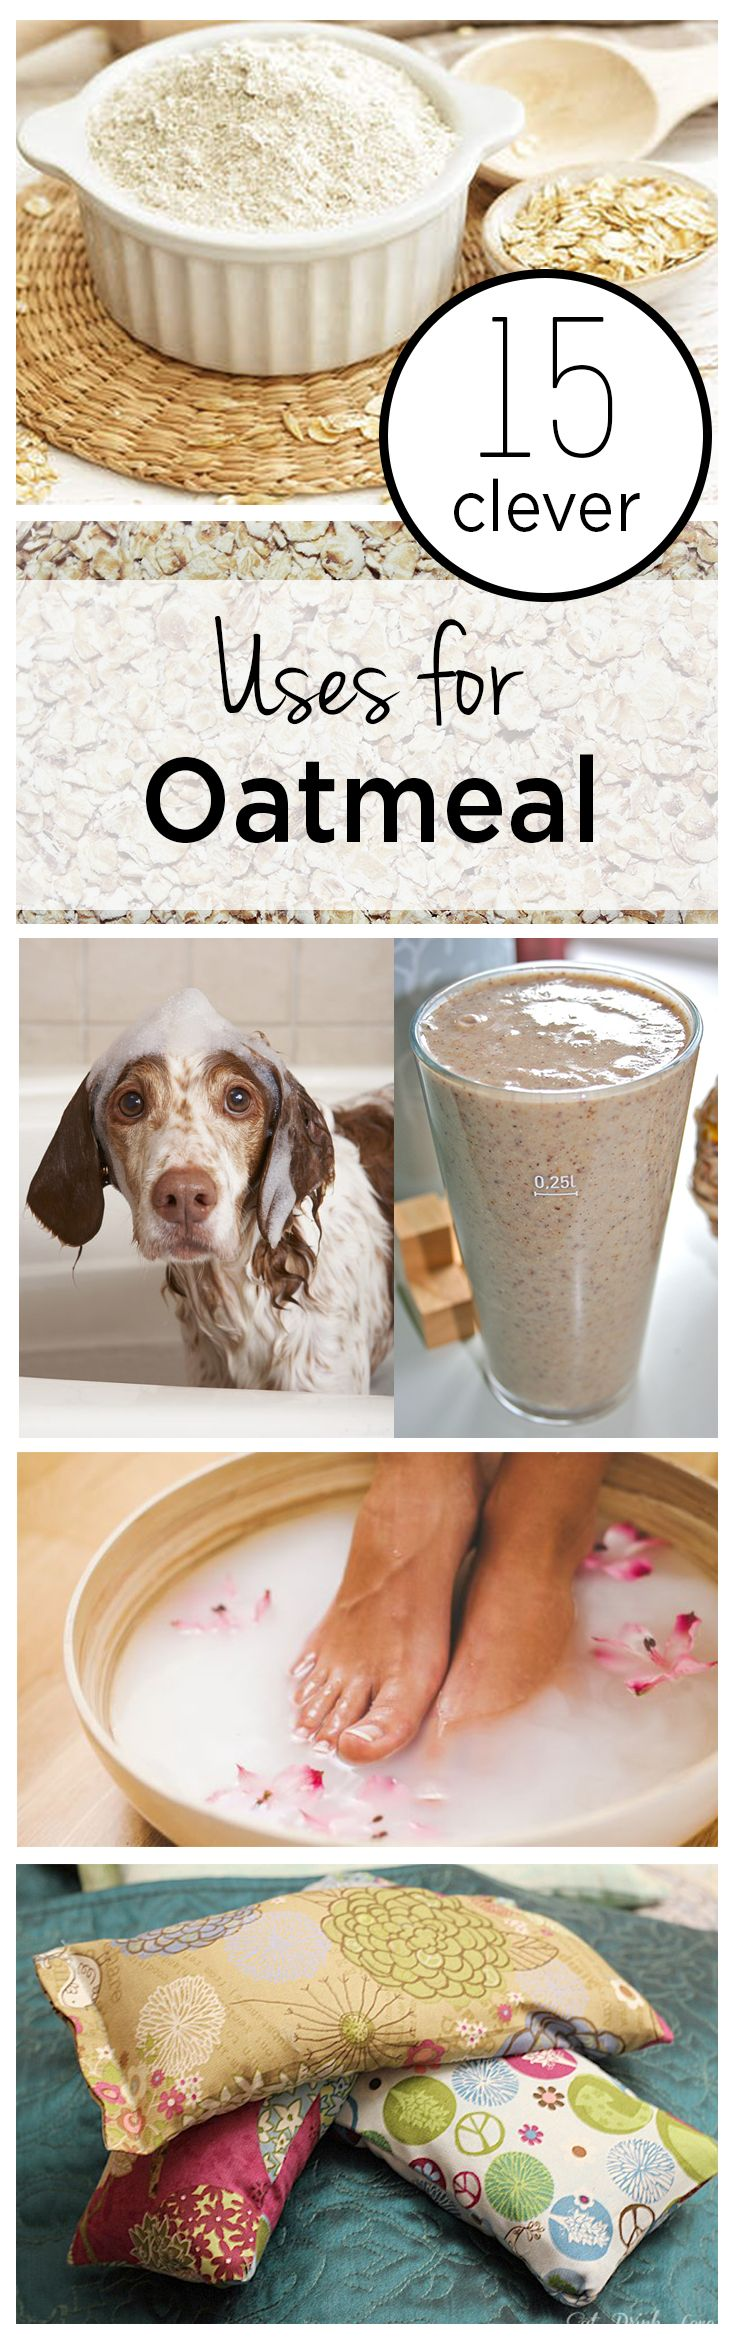 15 Clever Uses for Oatmeal